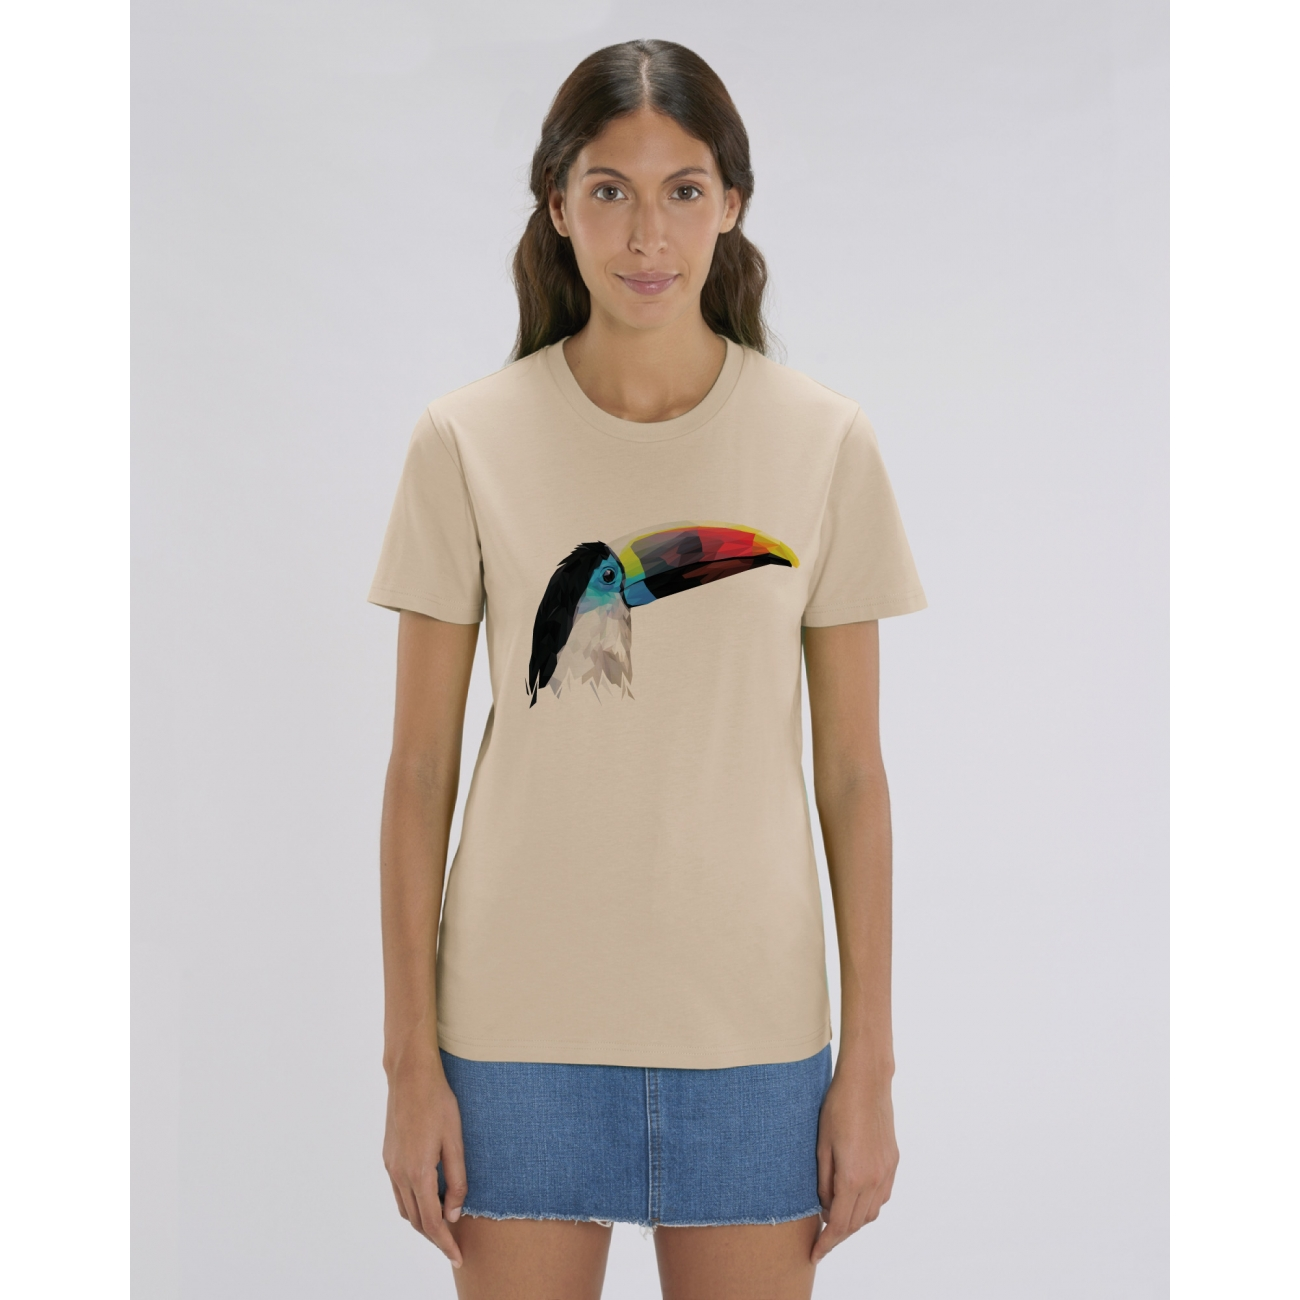 https://tee-shirt-bio.com/7852-thickbox_default/tee-shirt-couleur-sable-coton-bio-impression-toucan-creator.jpg